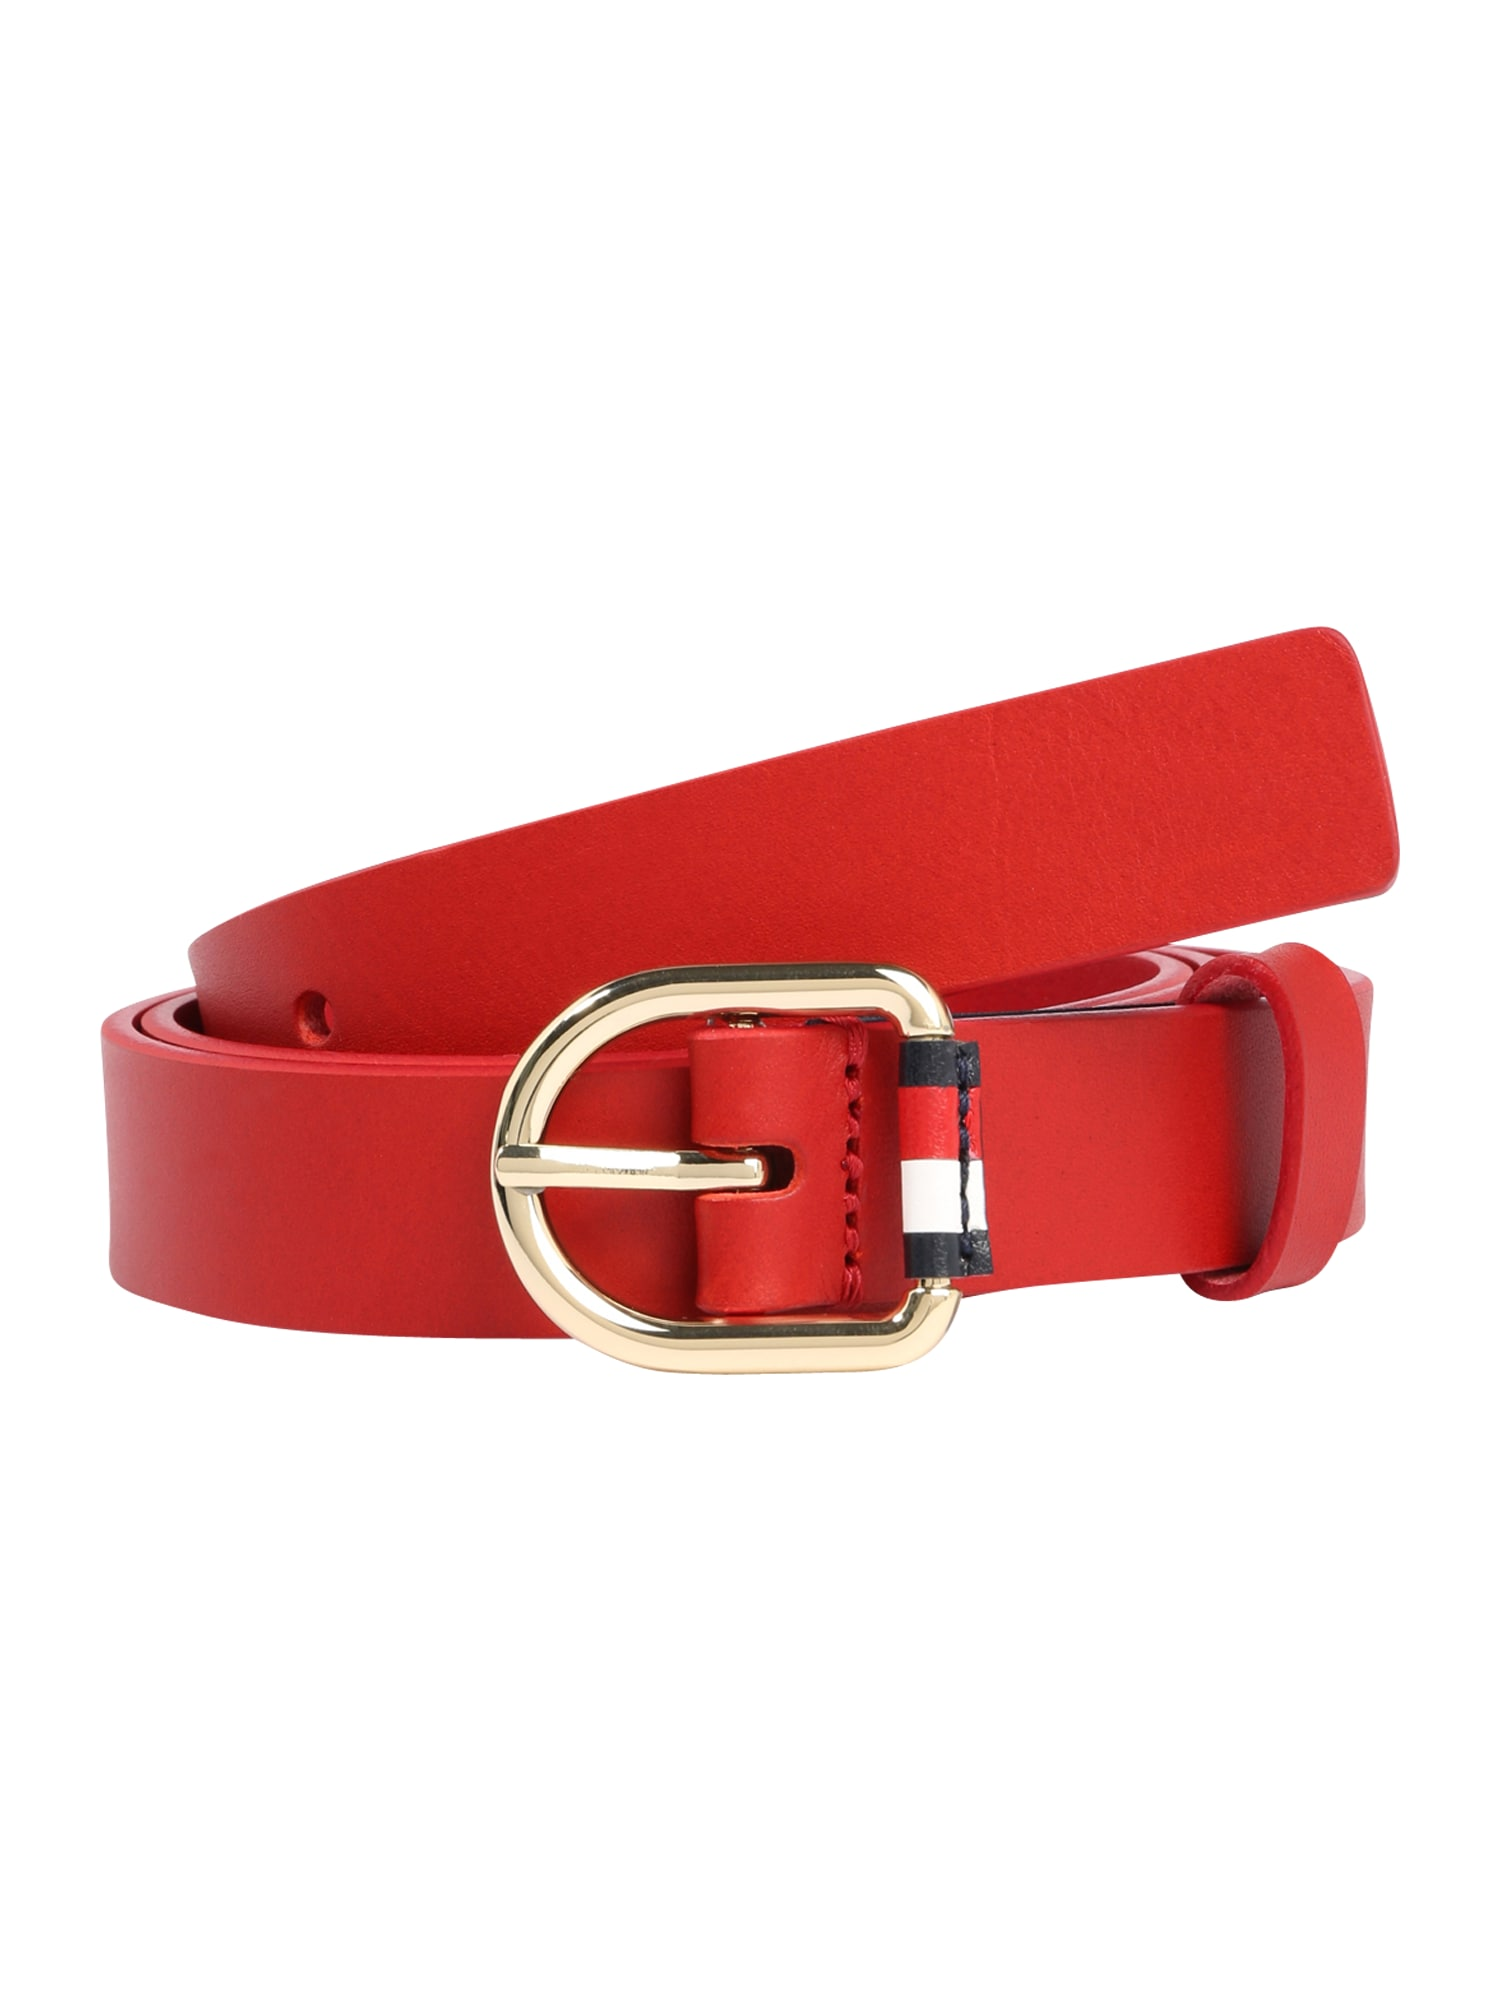 TOMMY HILFIGER Diržas 'Corporate Belt 2.5' raudona